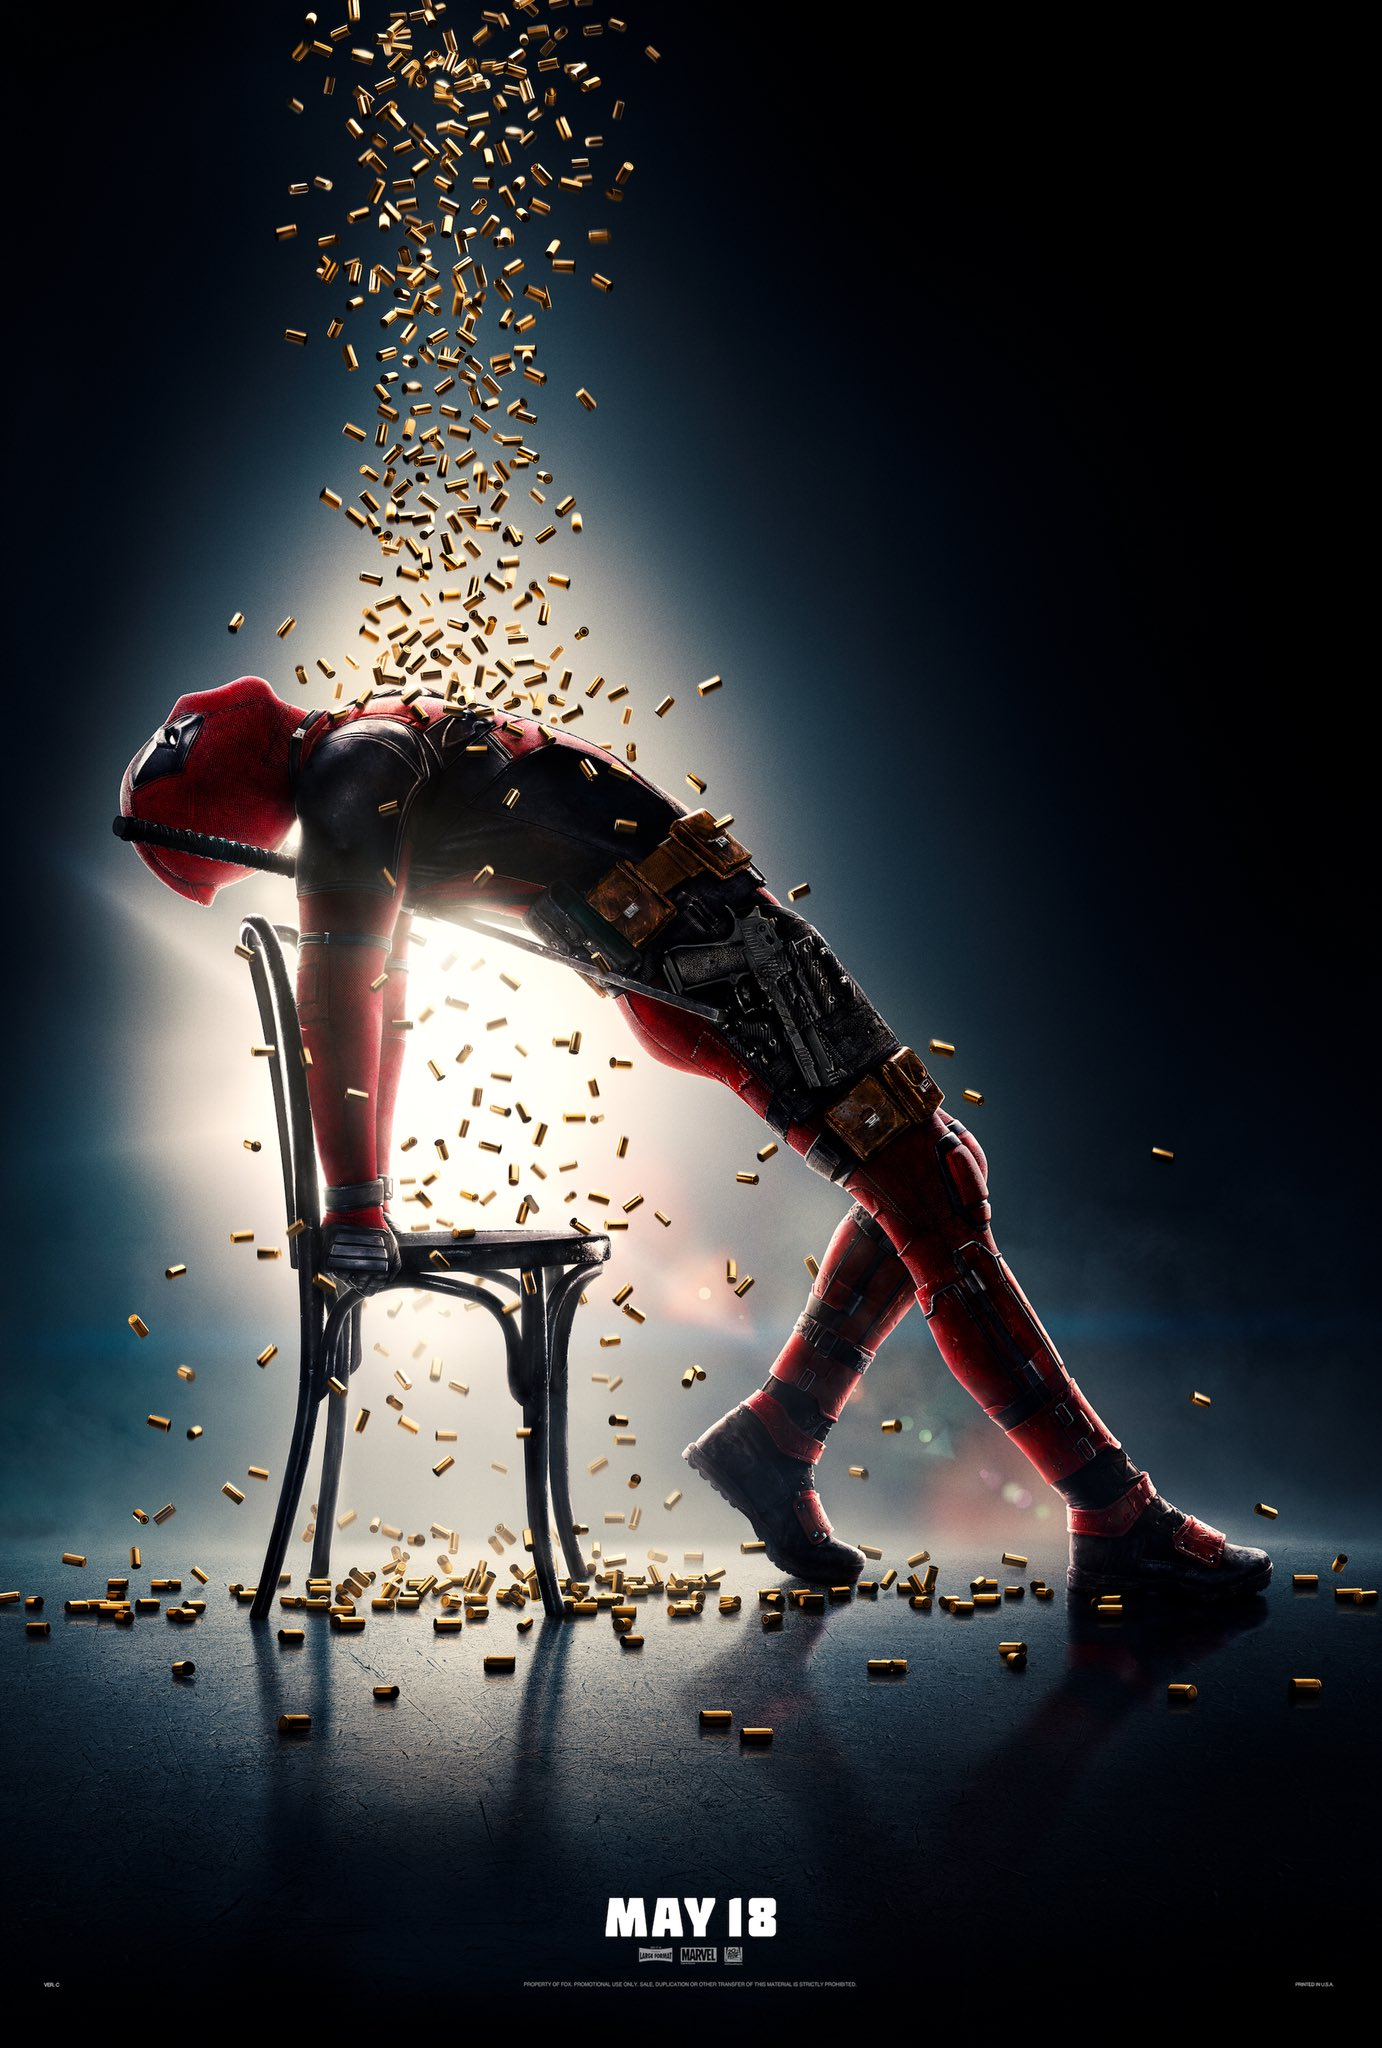 Take your passion. And make it happen.  #Deadpool https://t.co/7MY7z7x6pj